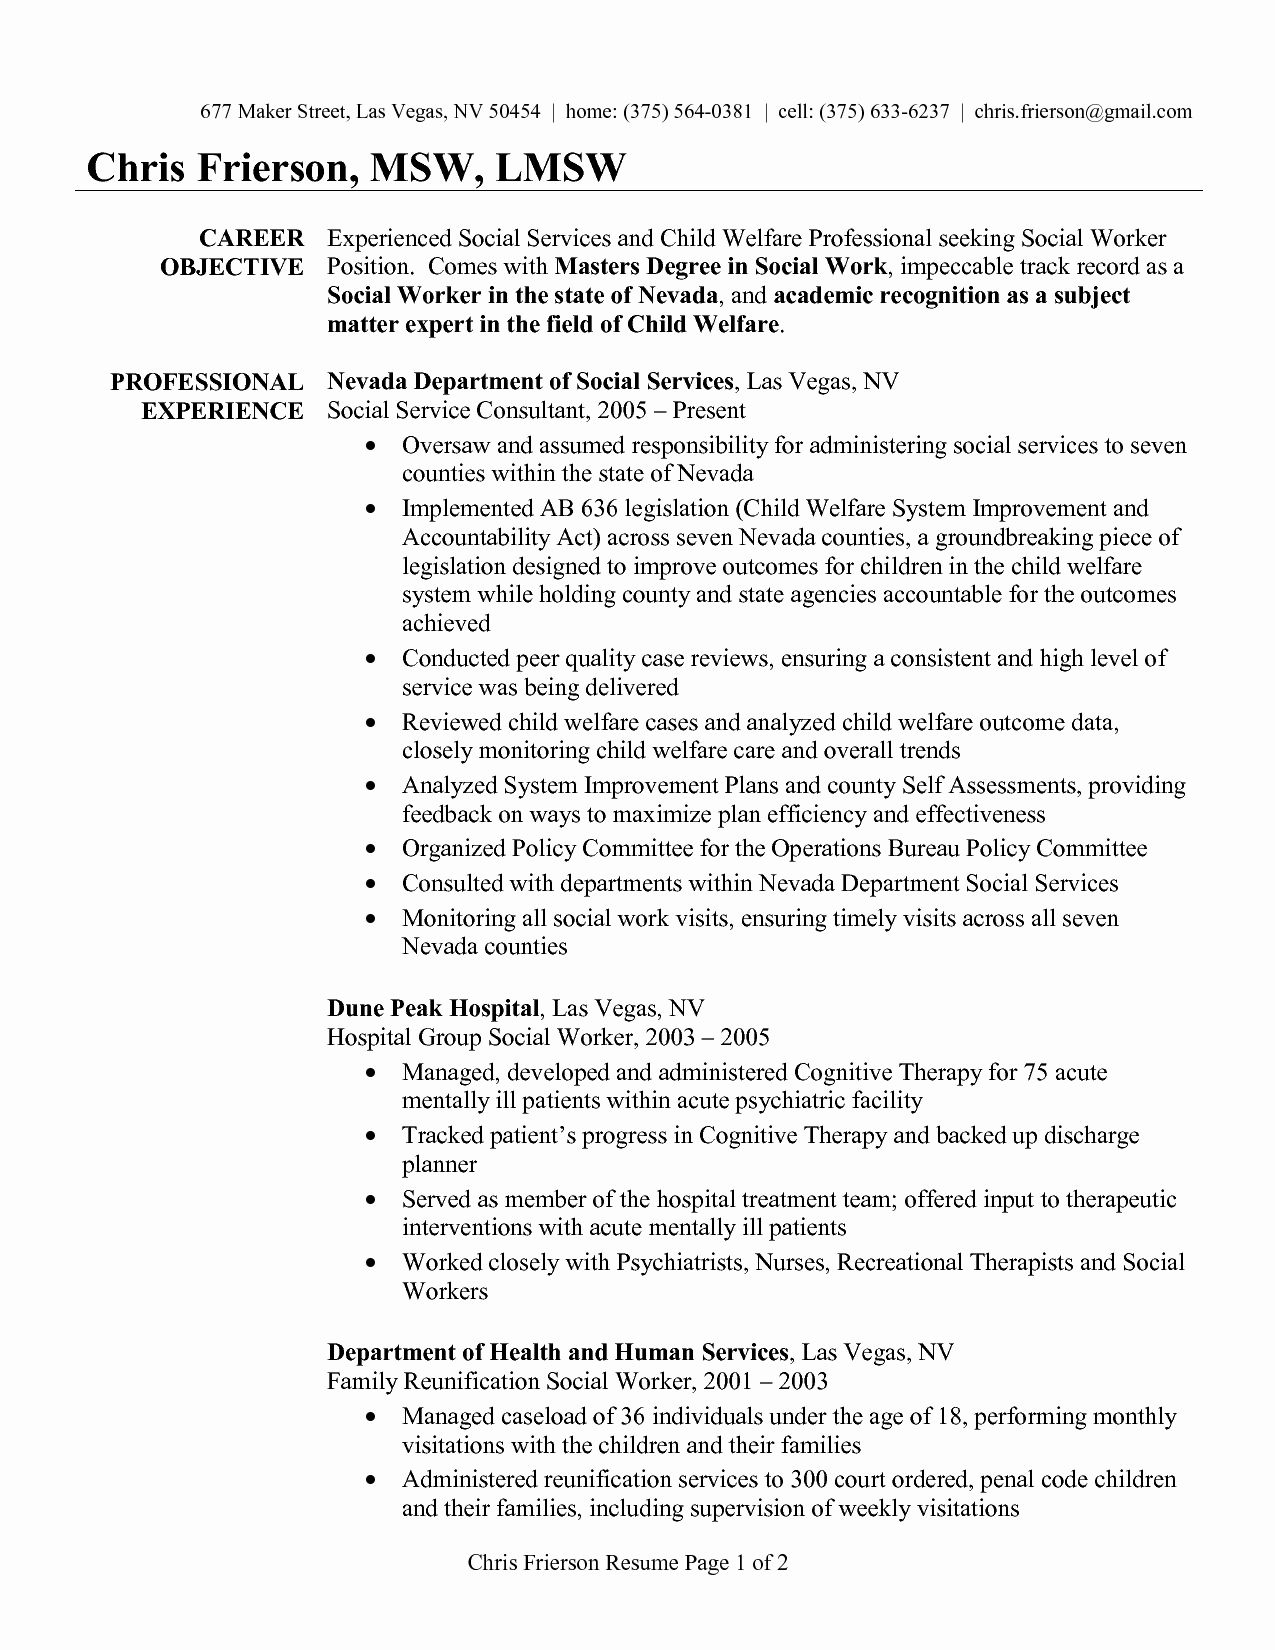 entry level social work resume inspirational examples worker sample objective statement Resume Entry Level Social Work Resume